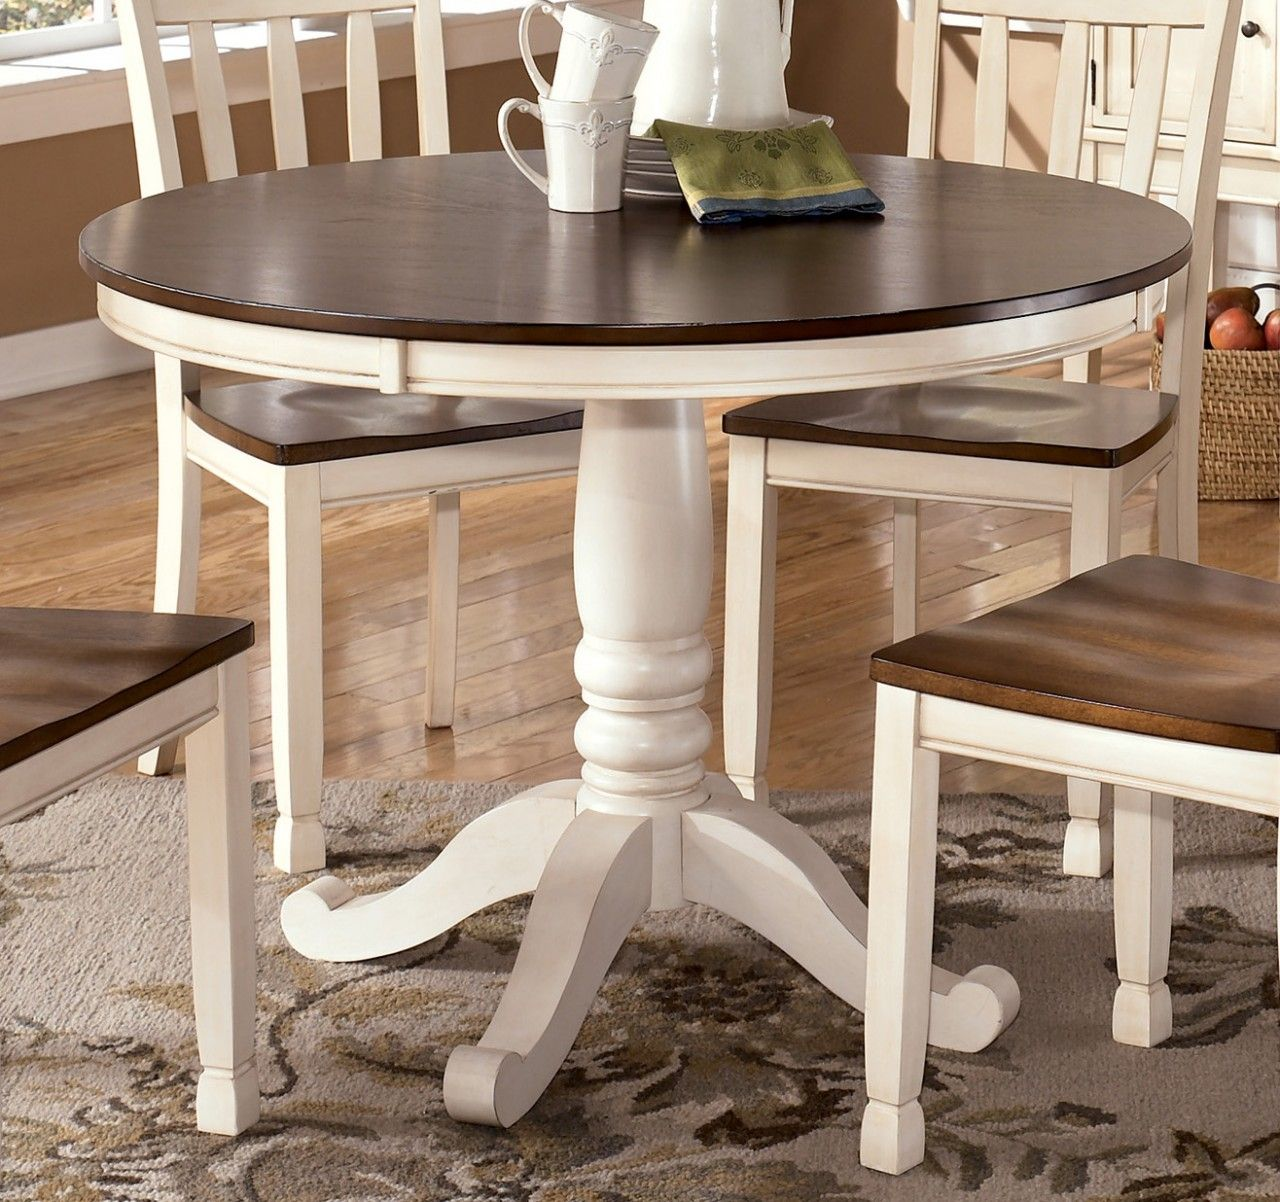 Country Style Kitchen Table Pantry Storage Cabinet Round Modern Design